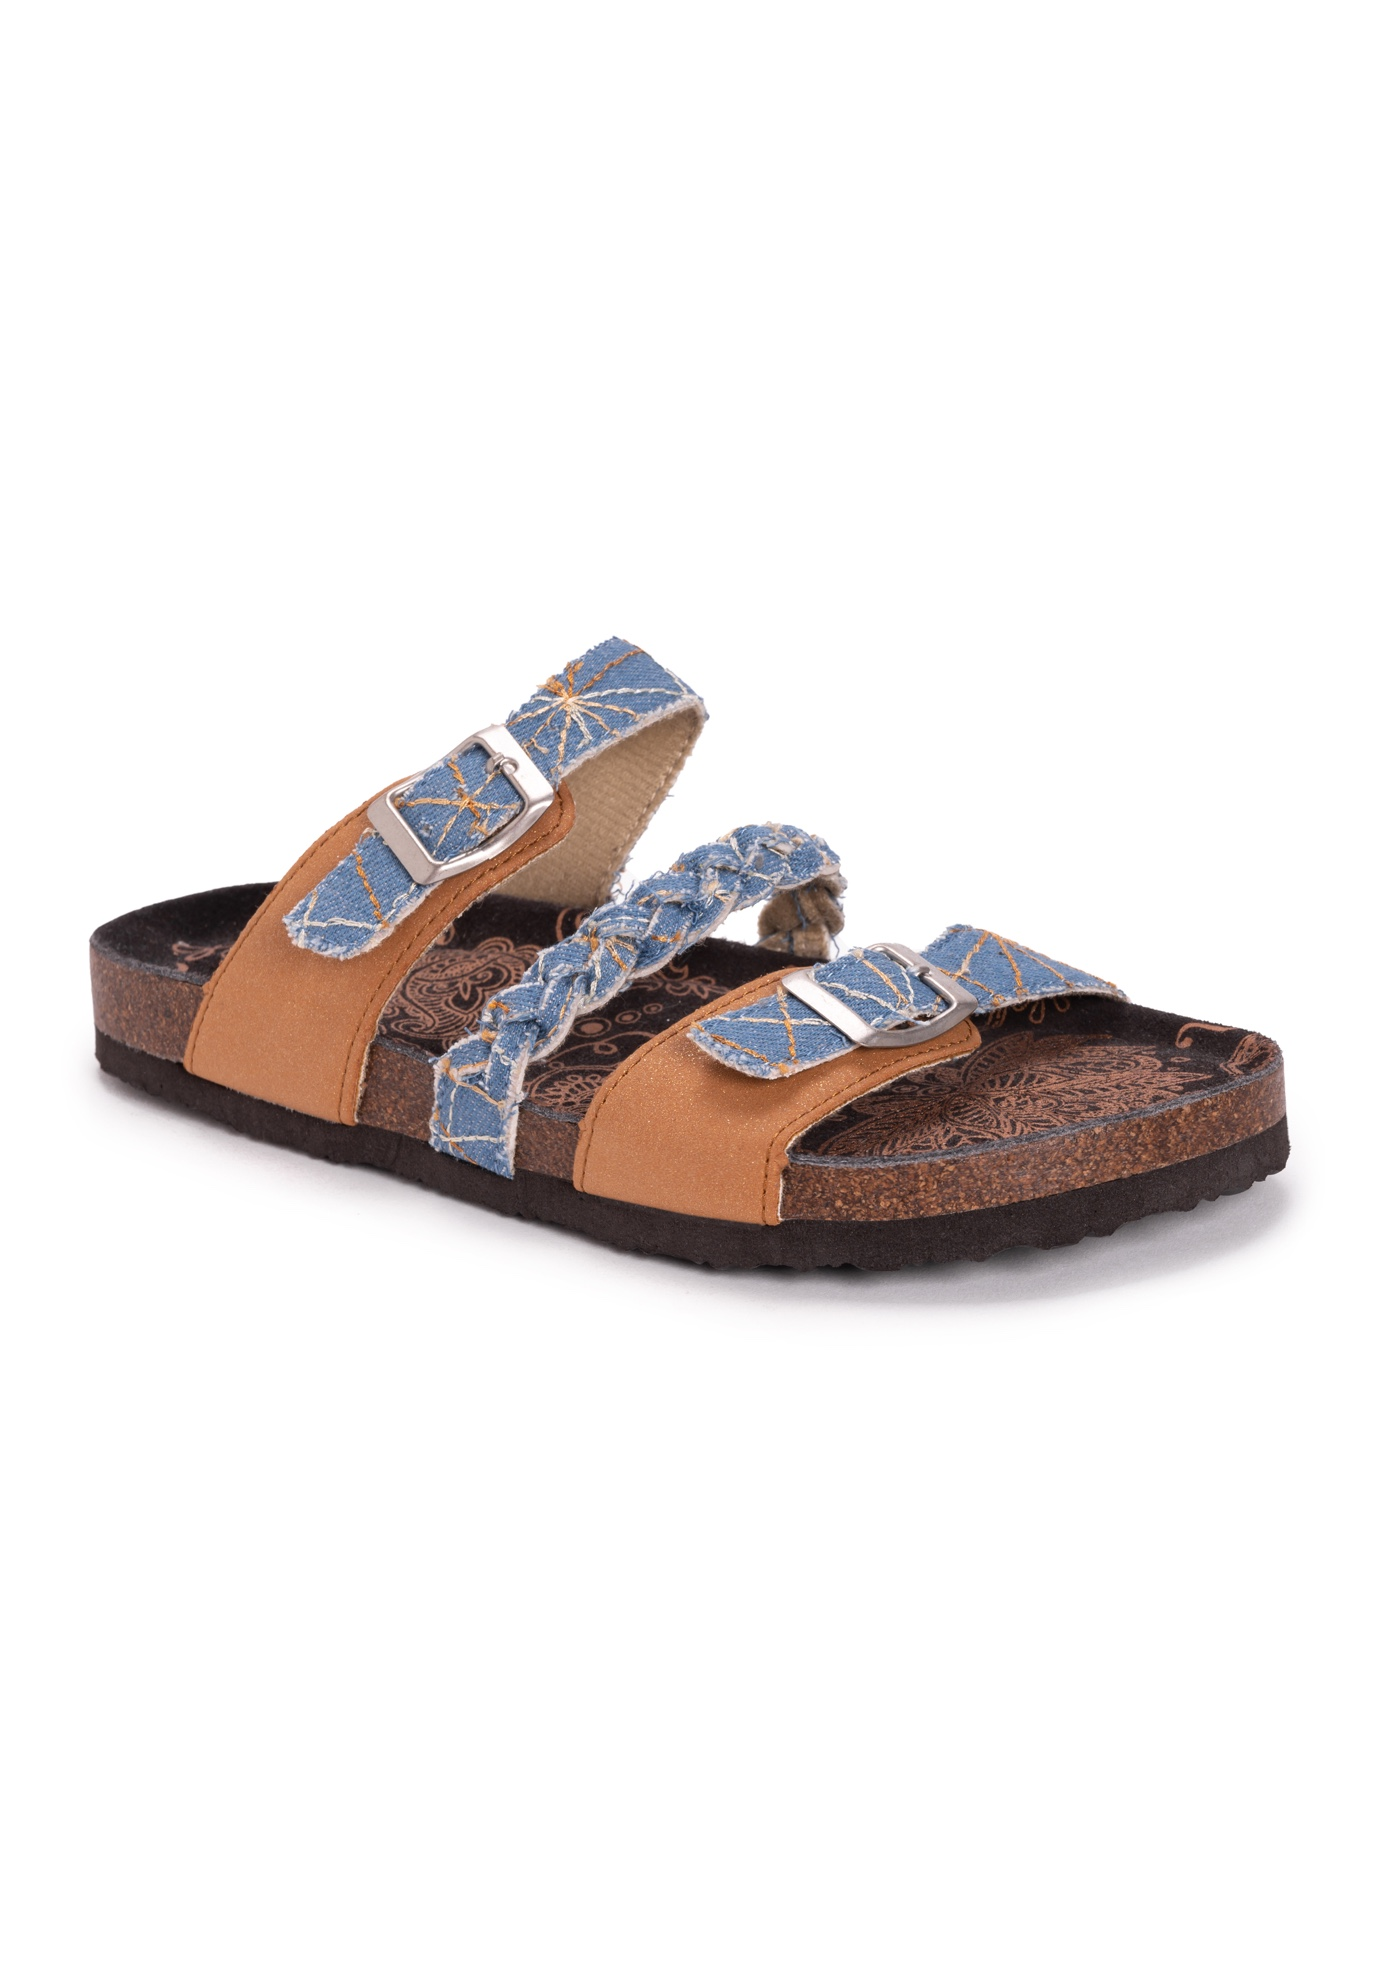 Bonnie Sandals by MUK LUKS®,